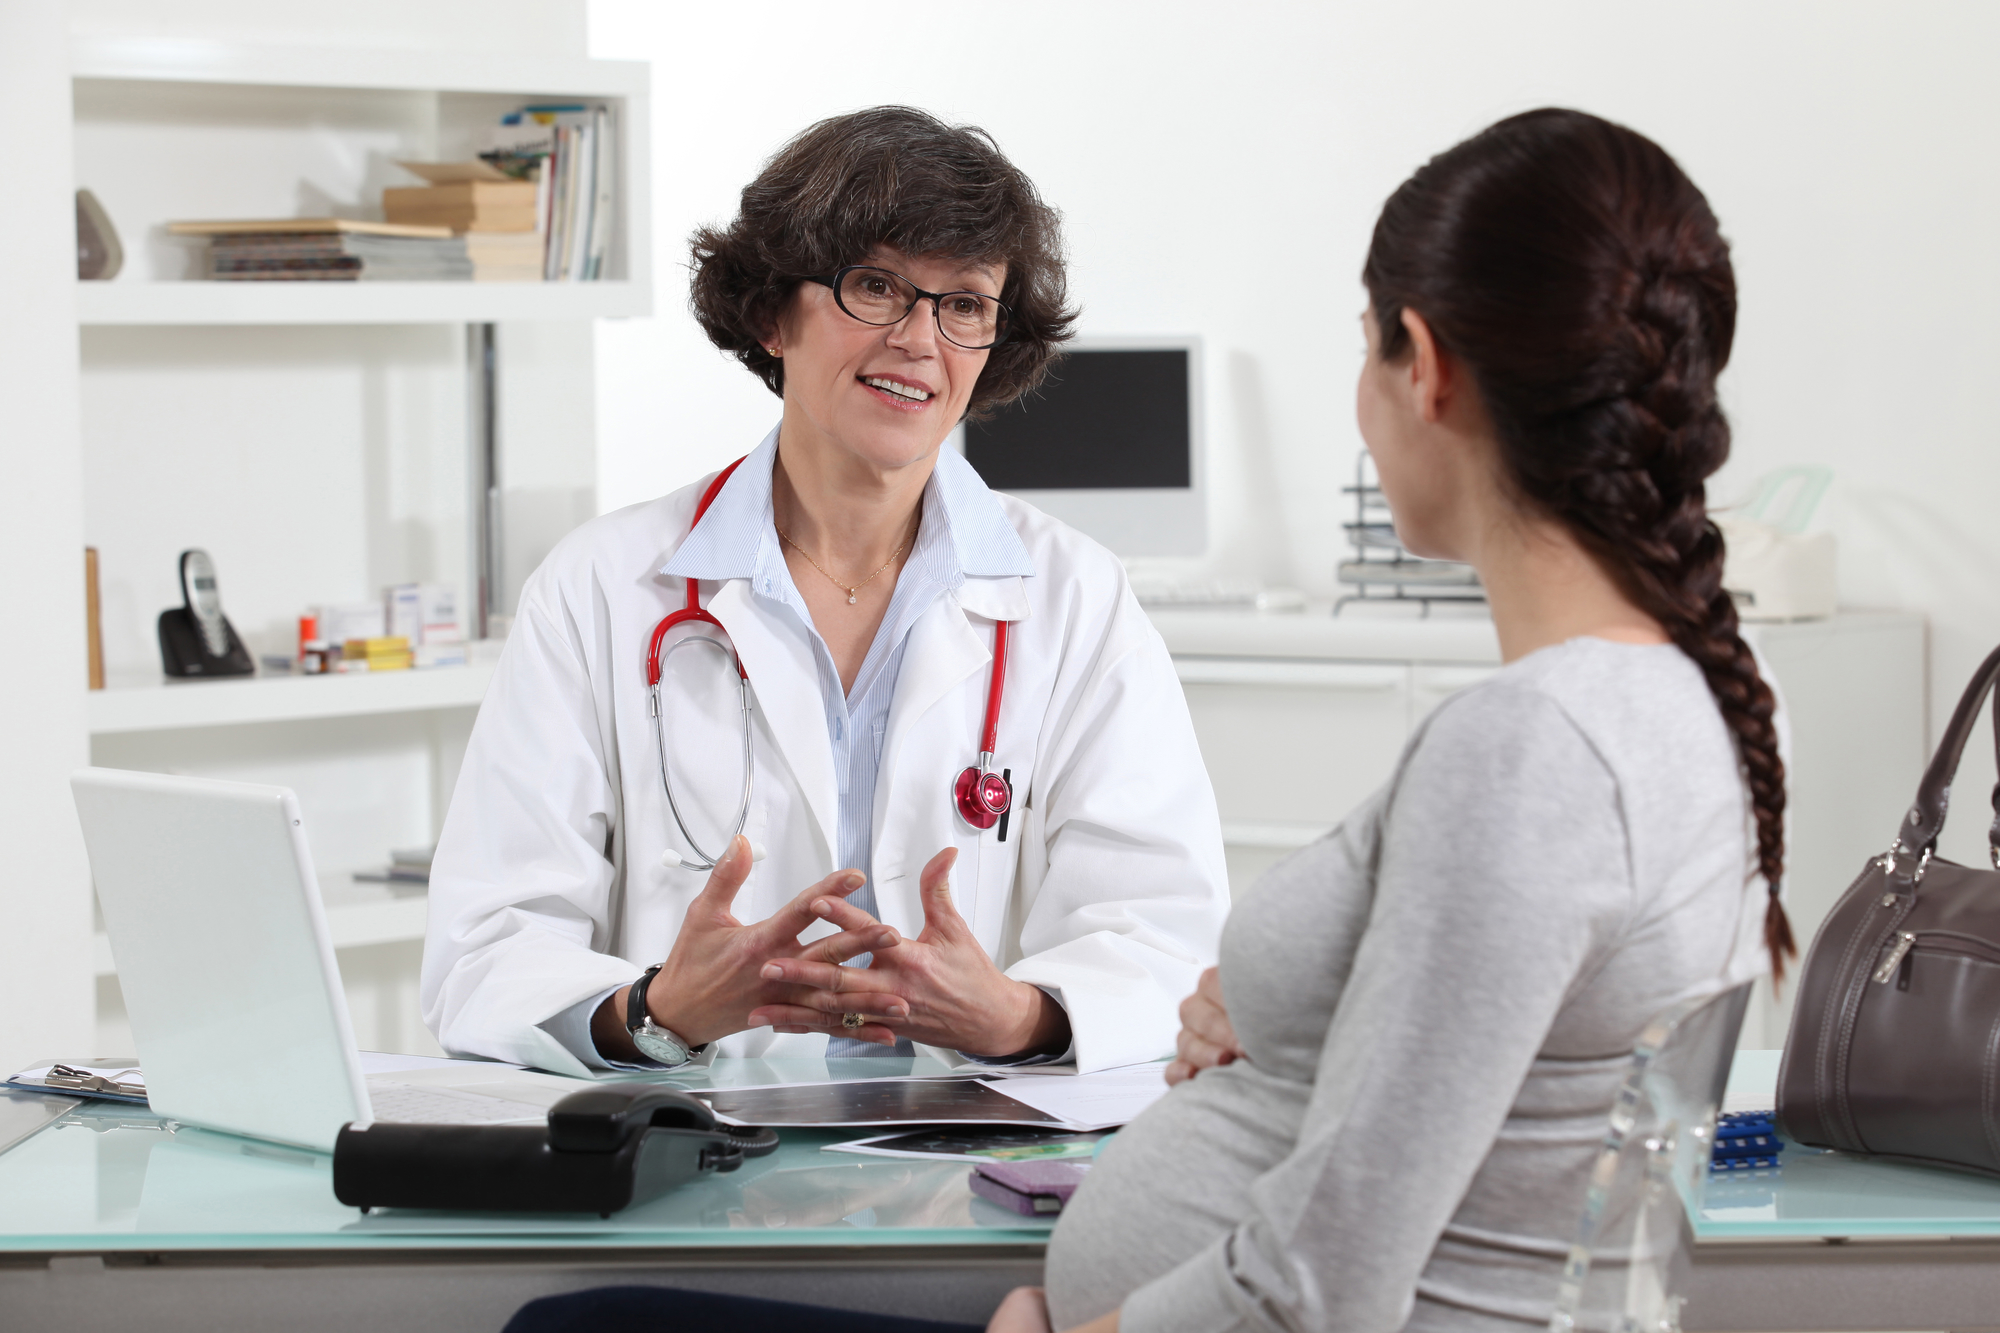 Pregnant woman in doctors appointment